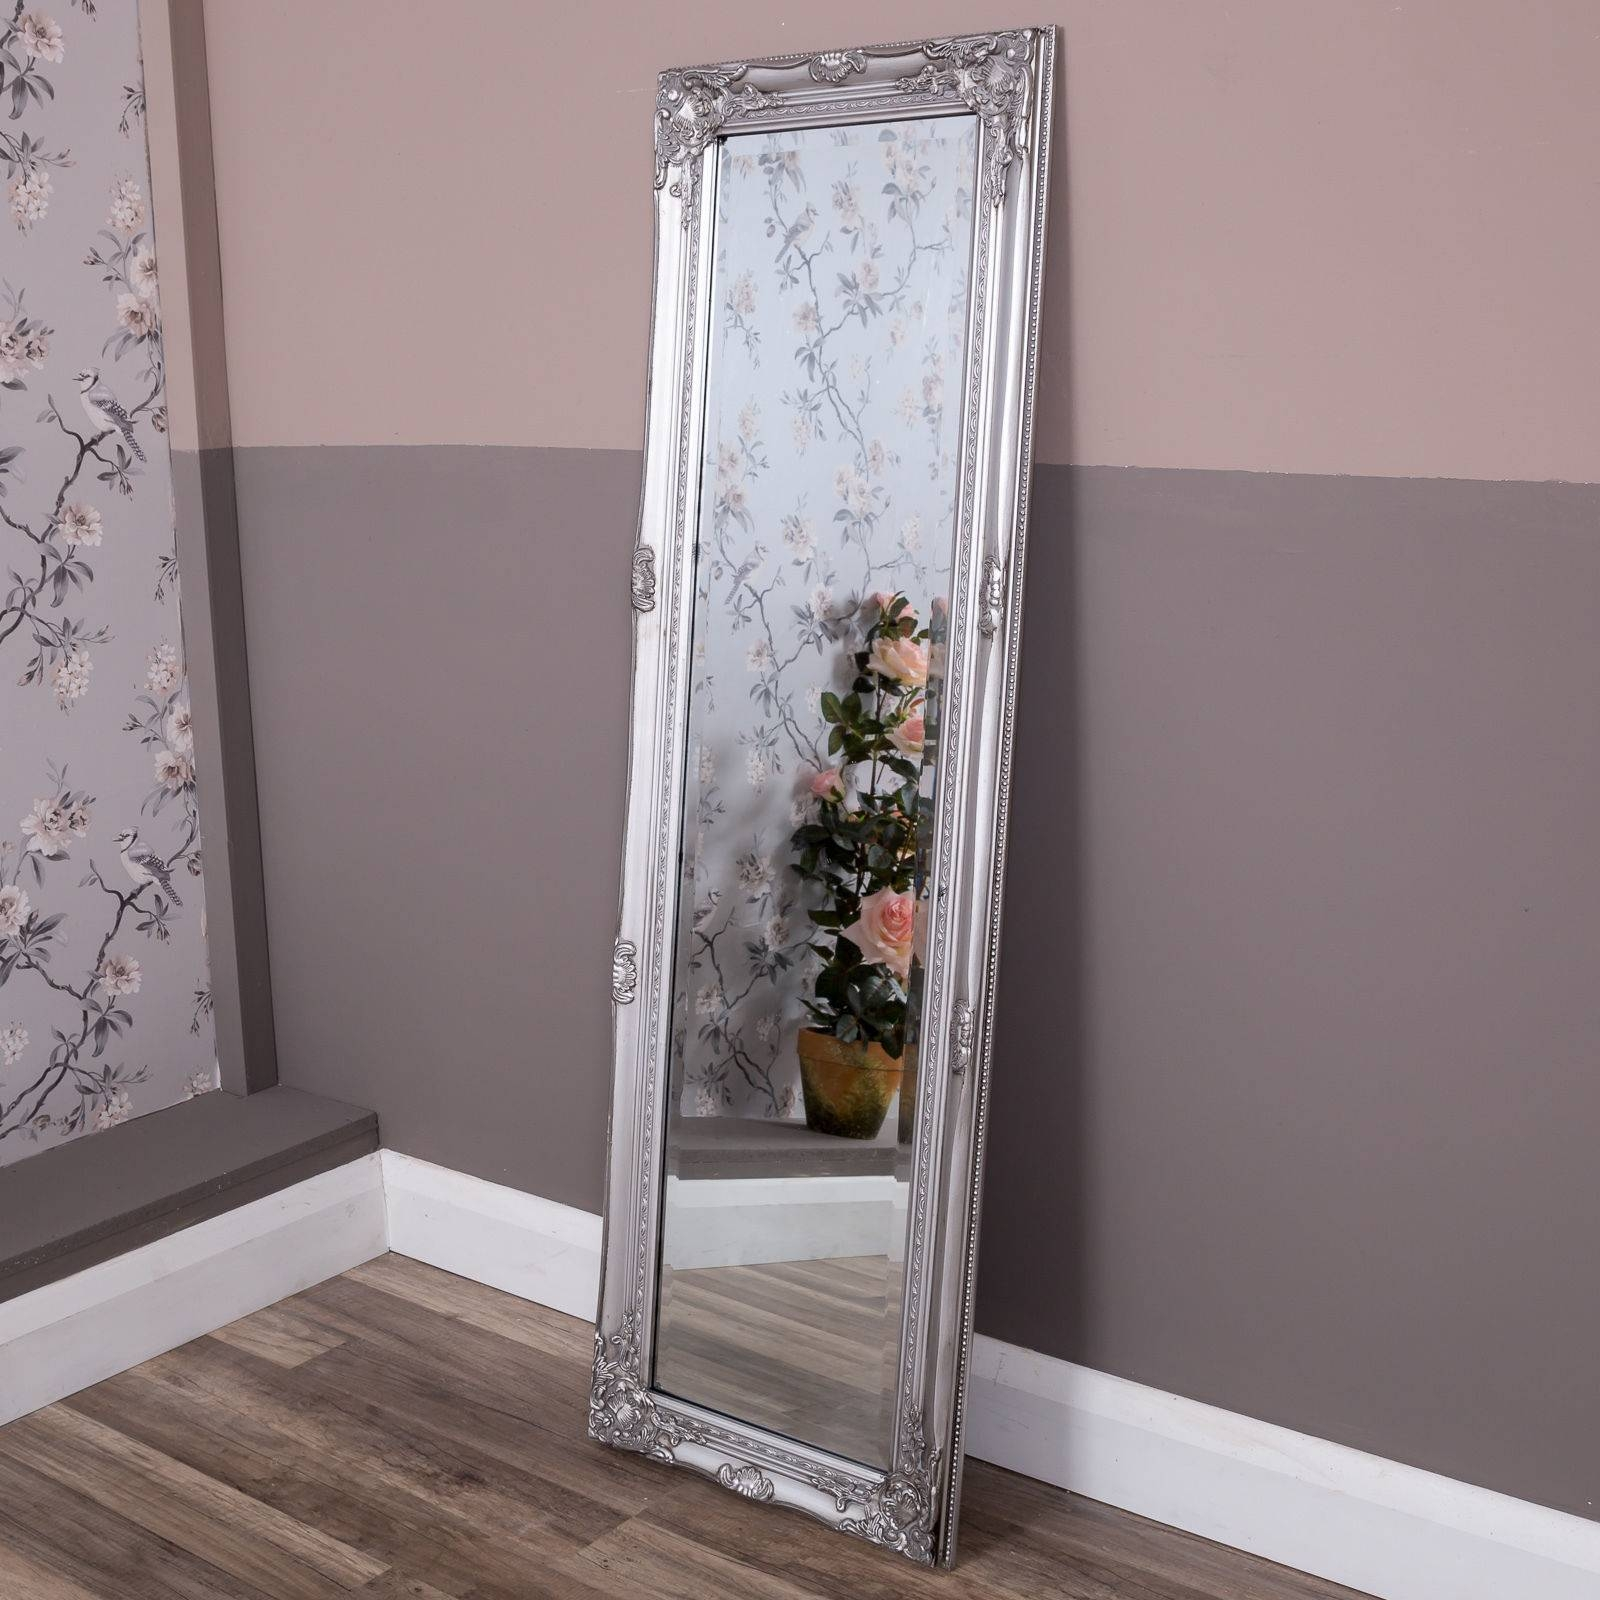 Decorative Mirrors | Ebay Intended For Shabby Chic Floor Standing Mirrors (View 9 of 15)